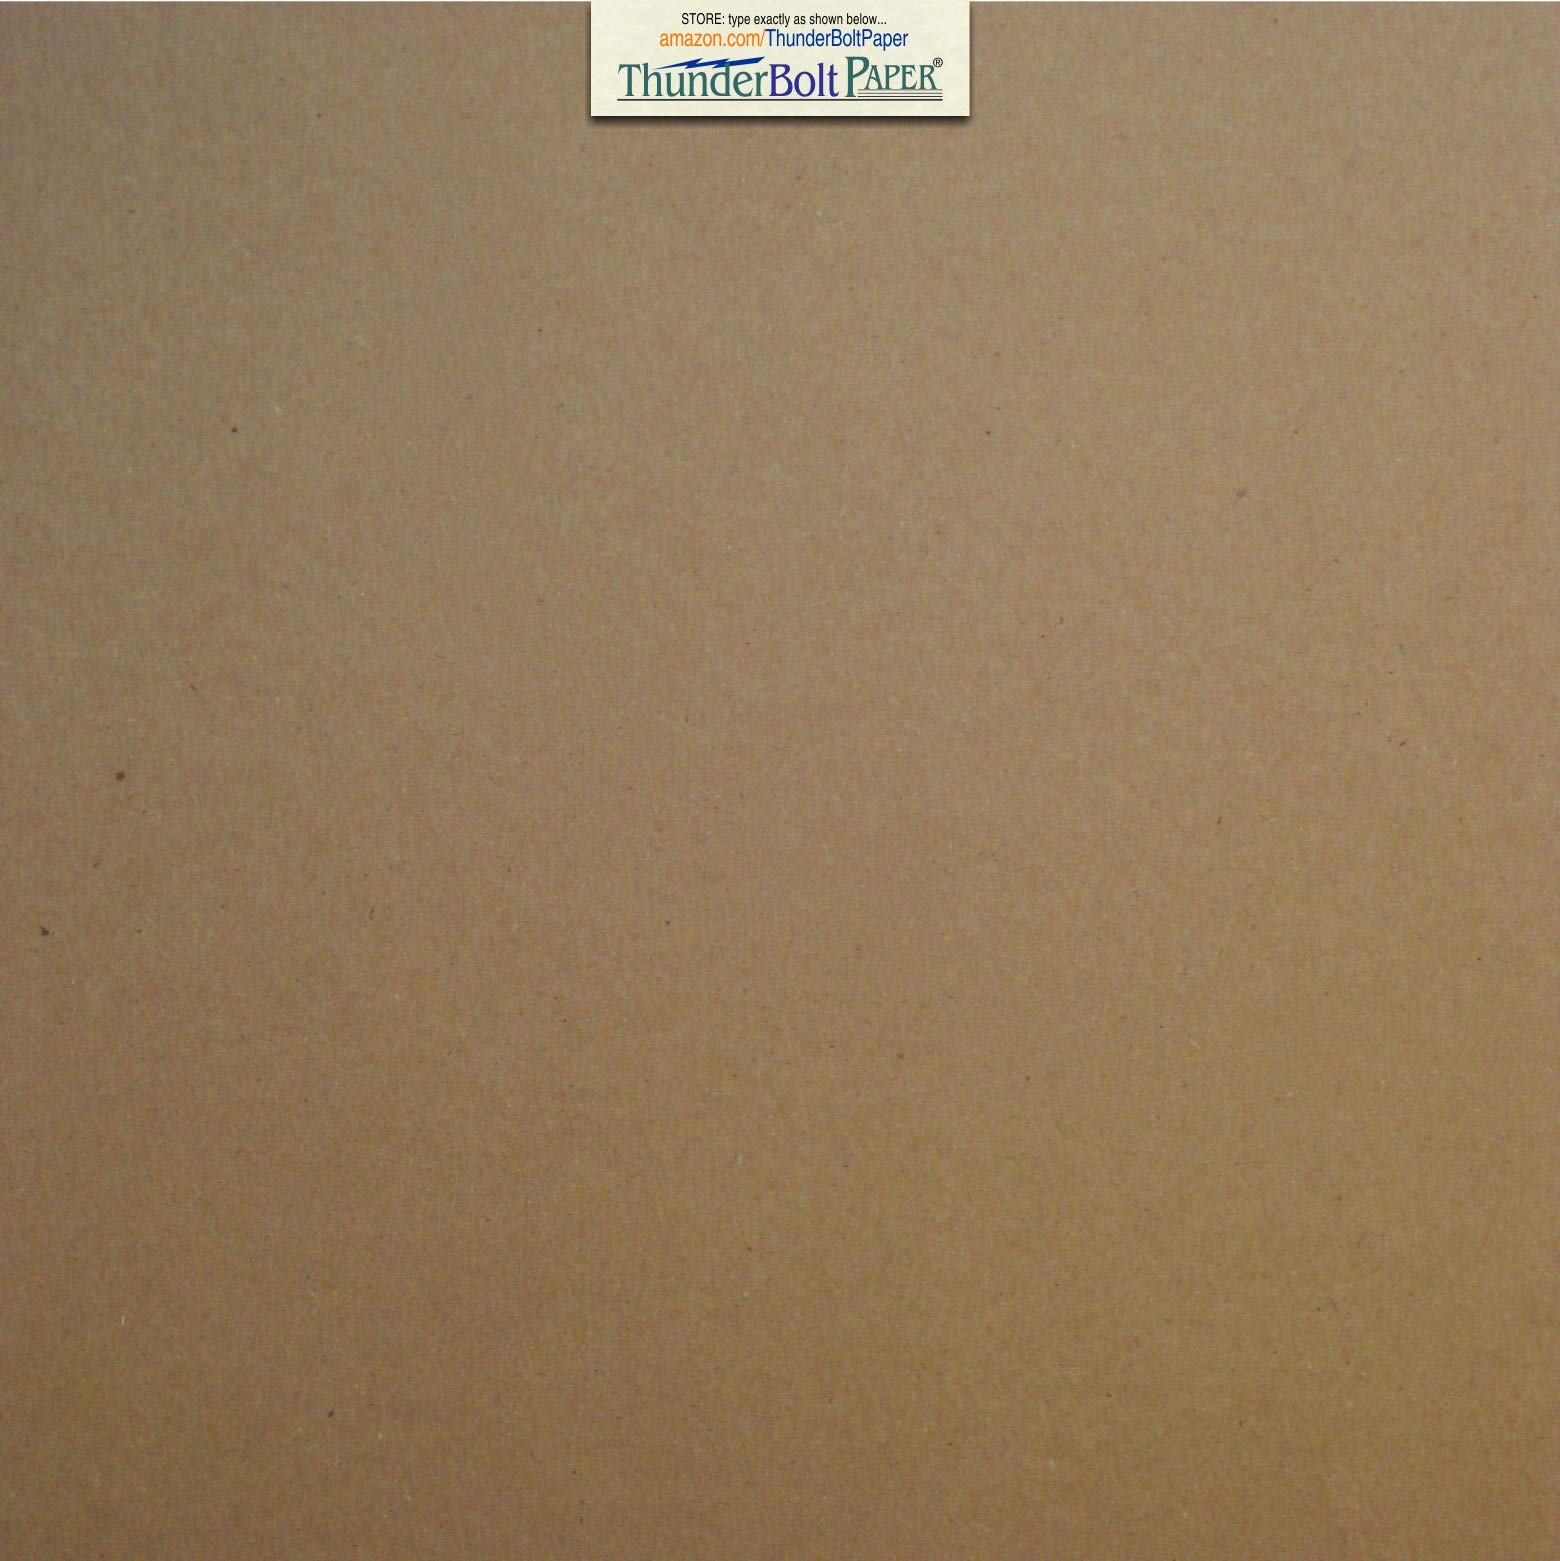 12 Sheets Brown/Gray Chipboard 60 Point Extra Thick 12'' X 12'' (12X12 Inches) Scrapbook Album|Cover Size .060 Caliper Extra X Heavy Cardboard as Thick as 15 Sheets 20# Paper